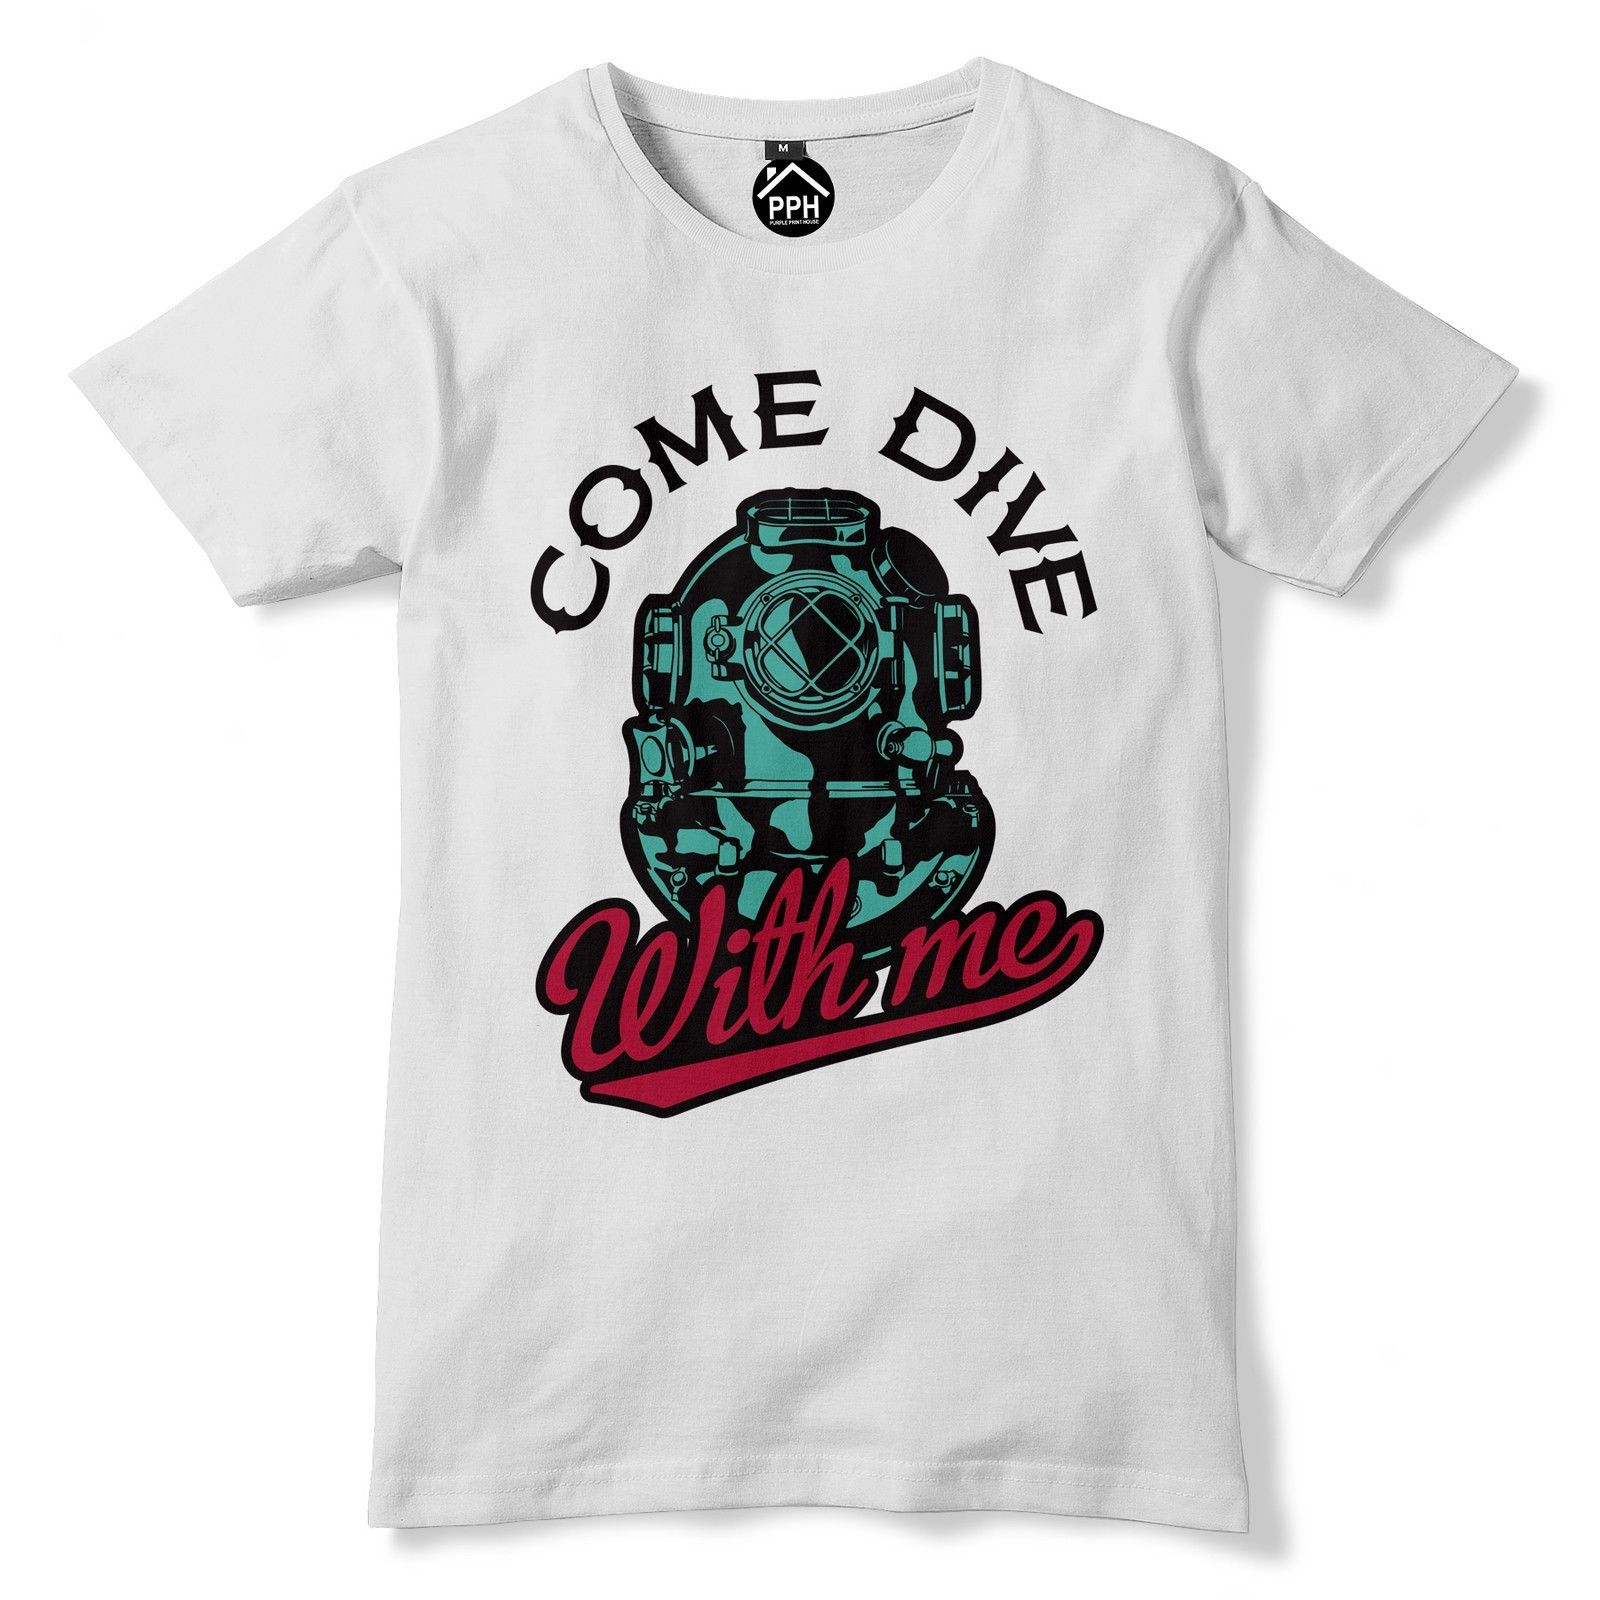 6acb5ce0bd Come Dive With Me Funny T Shirt Deep Sea Diving tshirt top Scuba Holiday 136